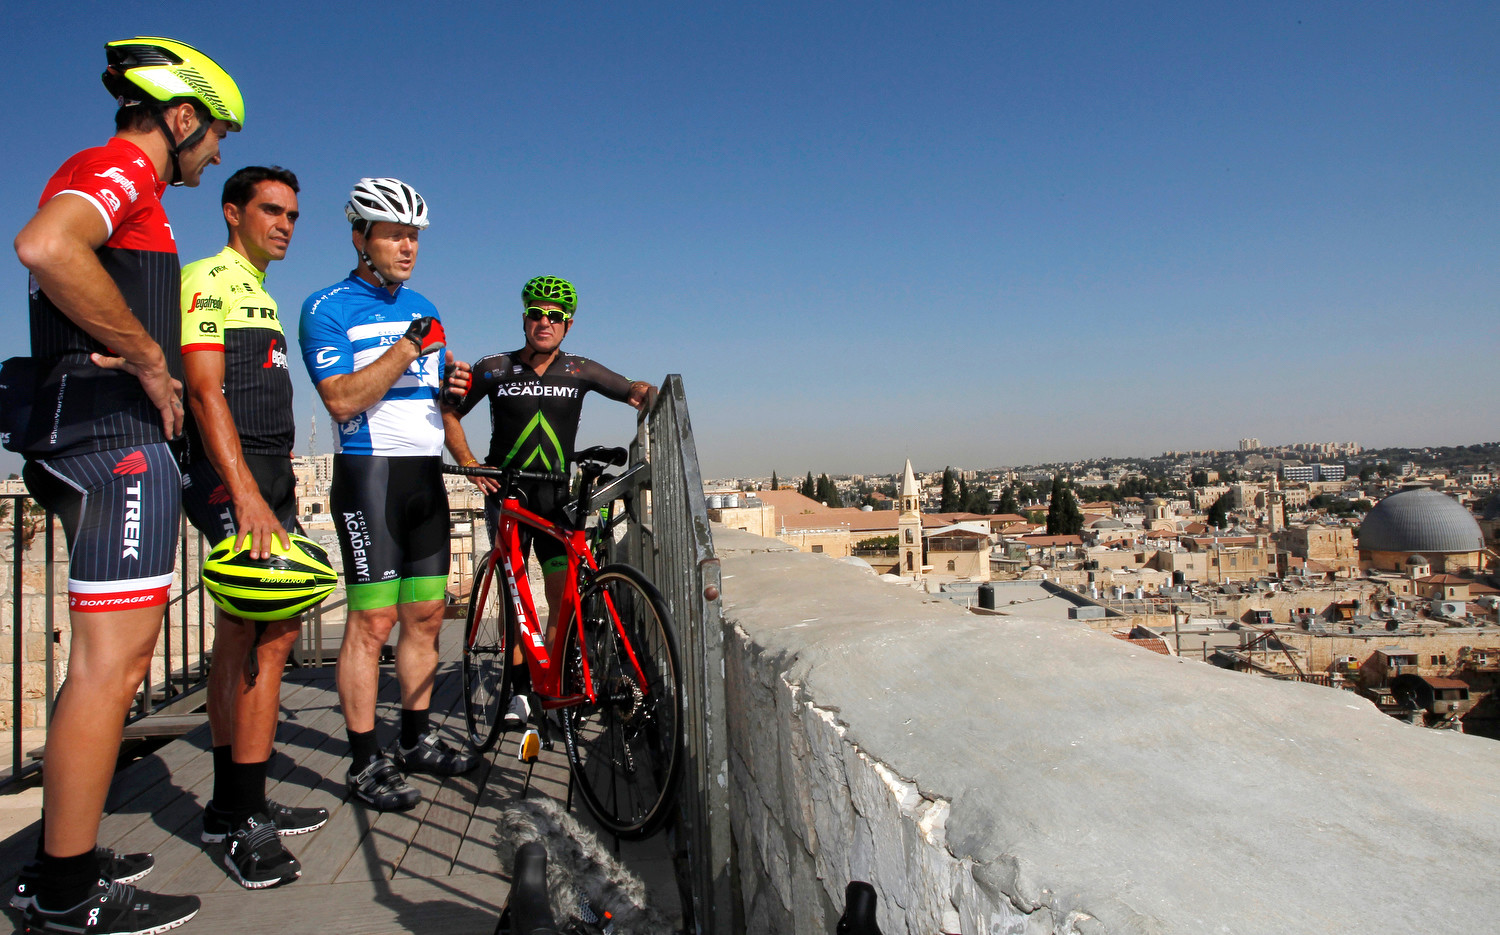 Among those pictured in Jerusalem are Alberto Contador and Ivan Basso, former winners of the Giro d'Italia.